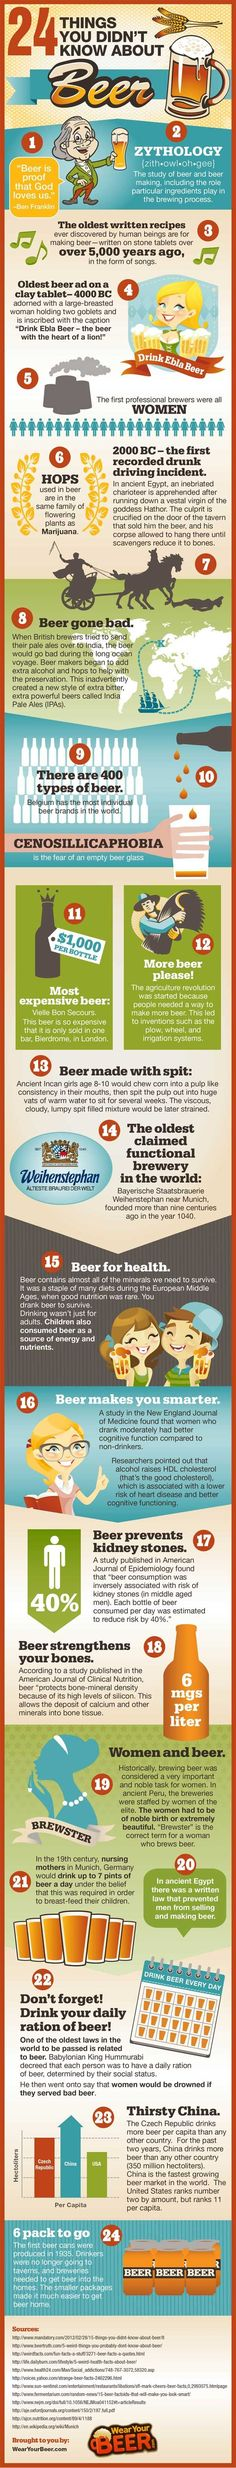 24 Things you didn't know about Beer - www.coolinfoimage... More Beer, All Beer, Best Beer, Home Brewing, Beer Brewing, Vodka, Beer Infographic, Infographics, Beverages